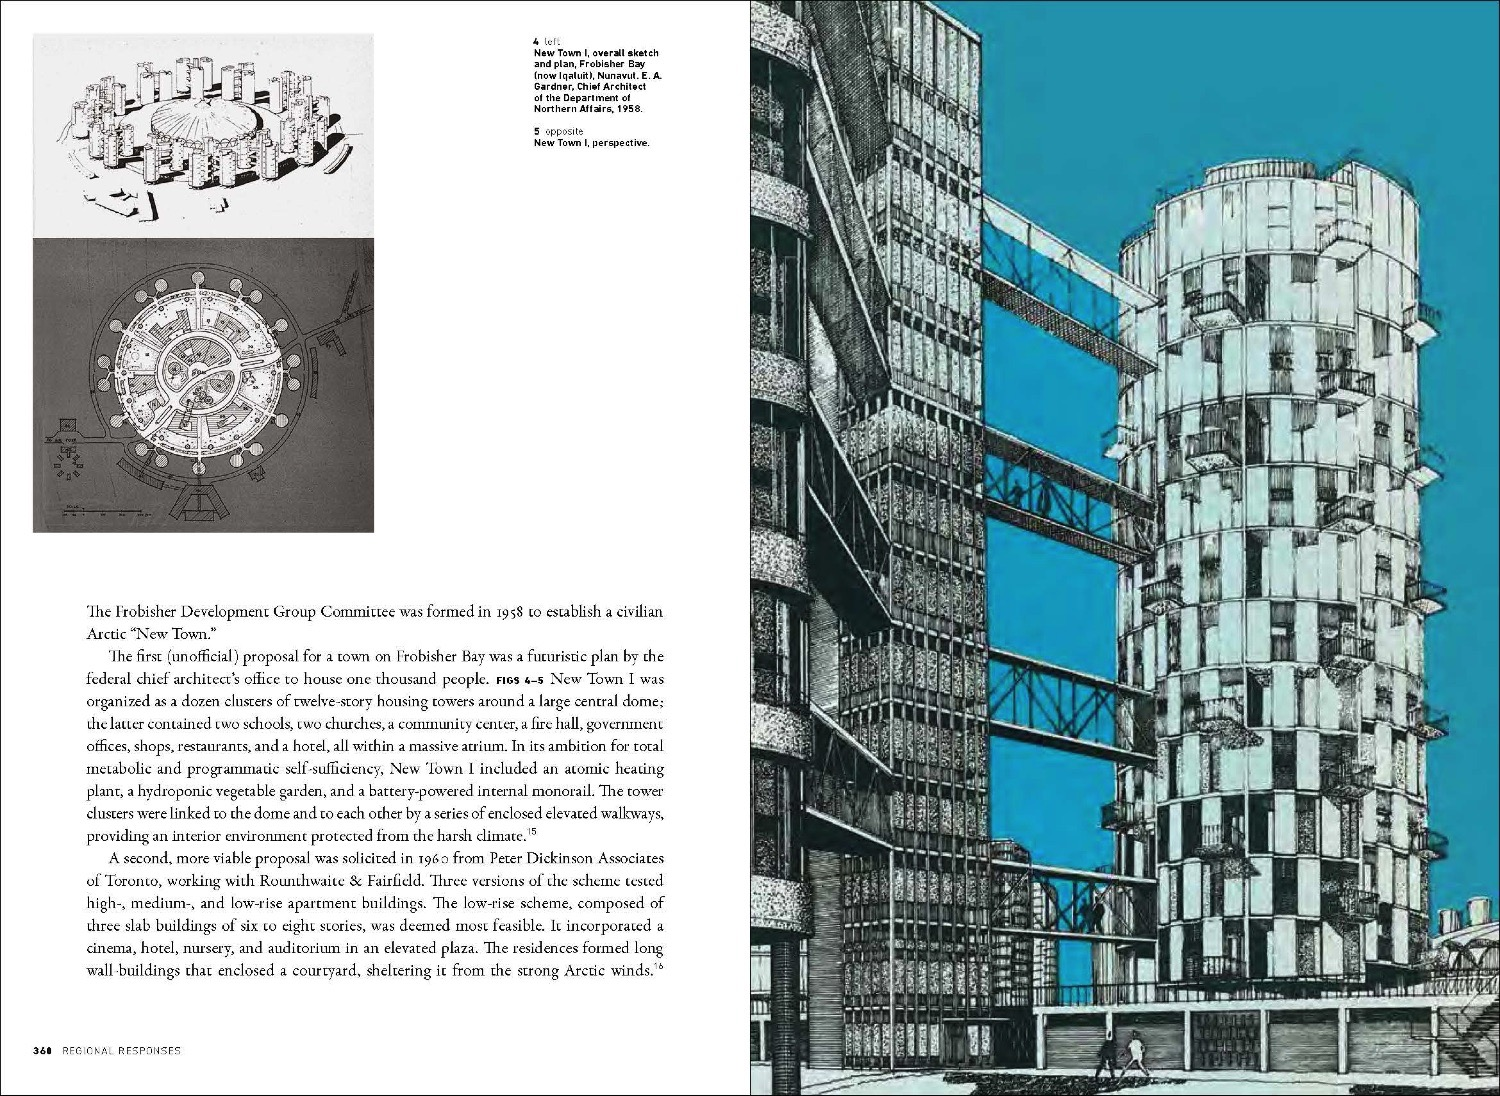 Coming this Fall: Canadian Modern Architecture, 1967 to the